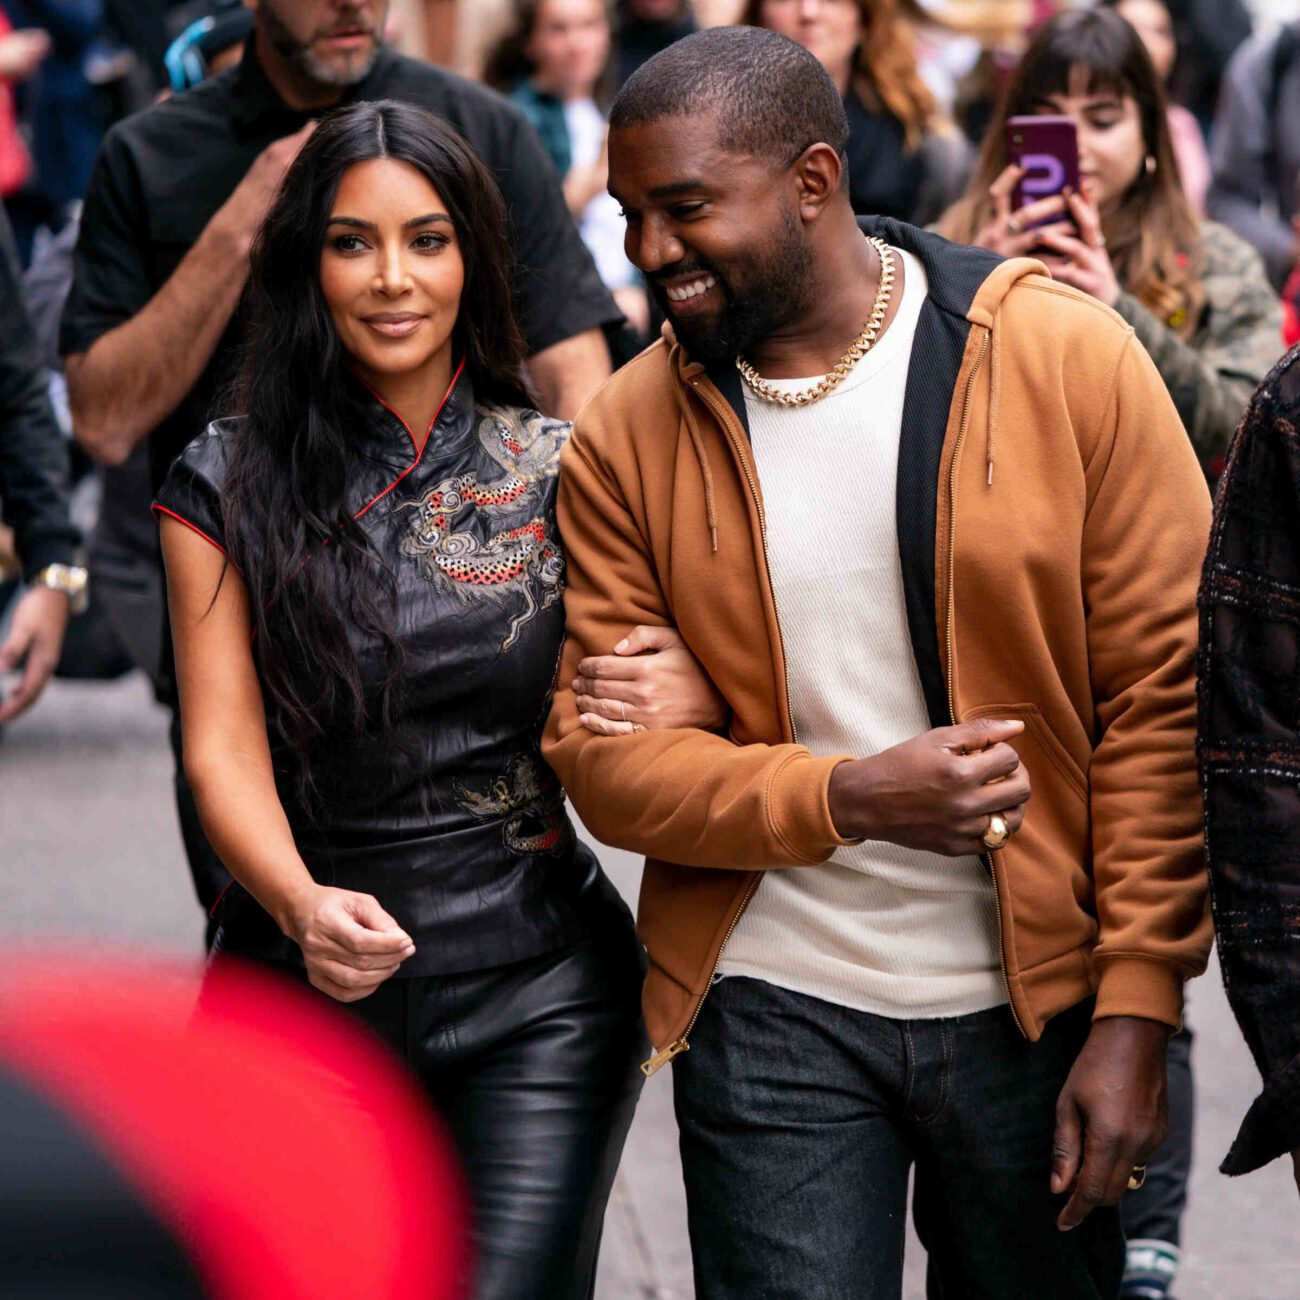 Despite their recent divorce, Kim Kardashian and Kanye West have been spotted together once again. Will the parents of four be reuniting any time soon?